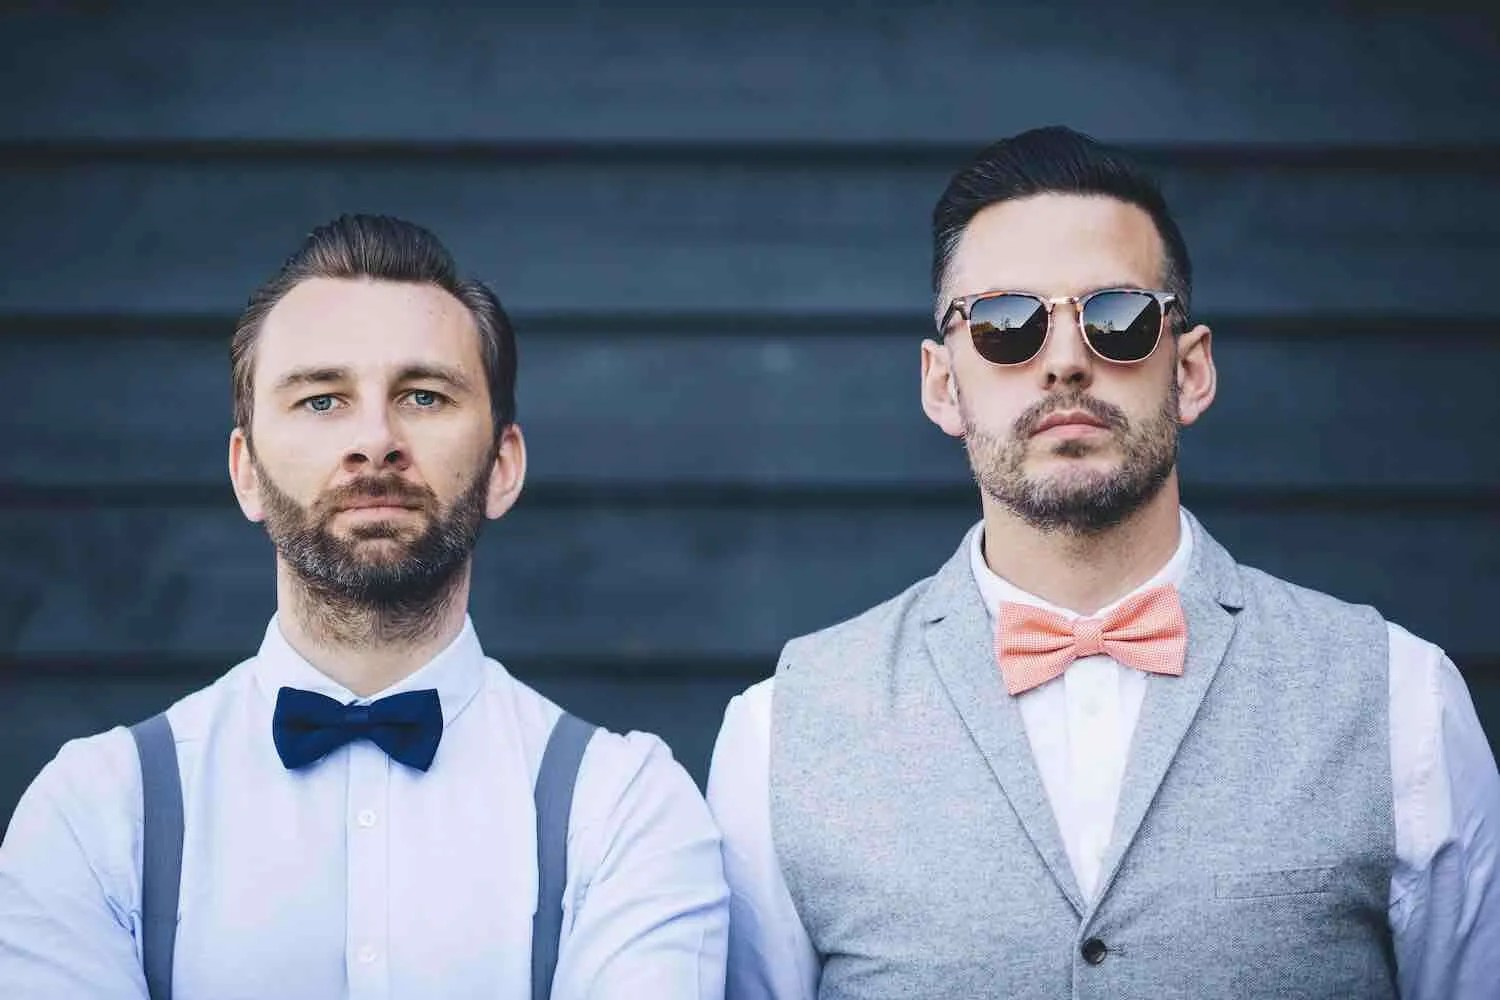 A picture of 2 stylish weddings djs